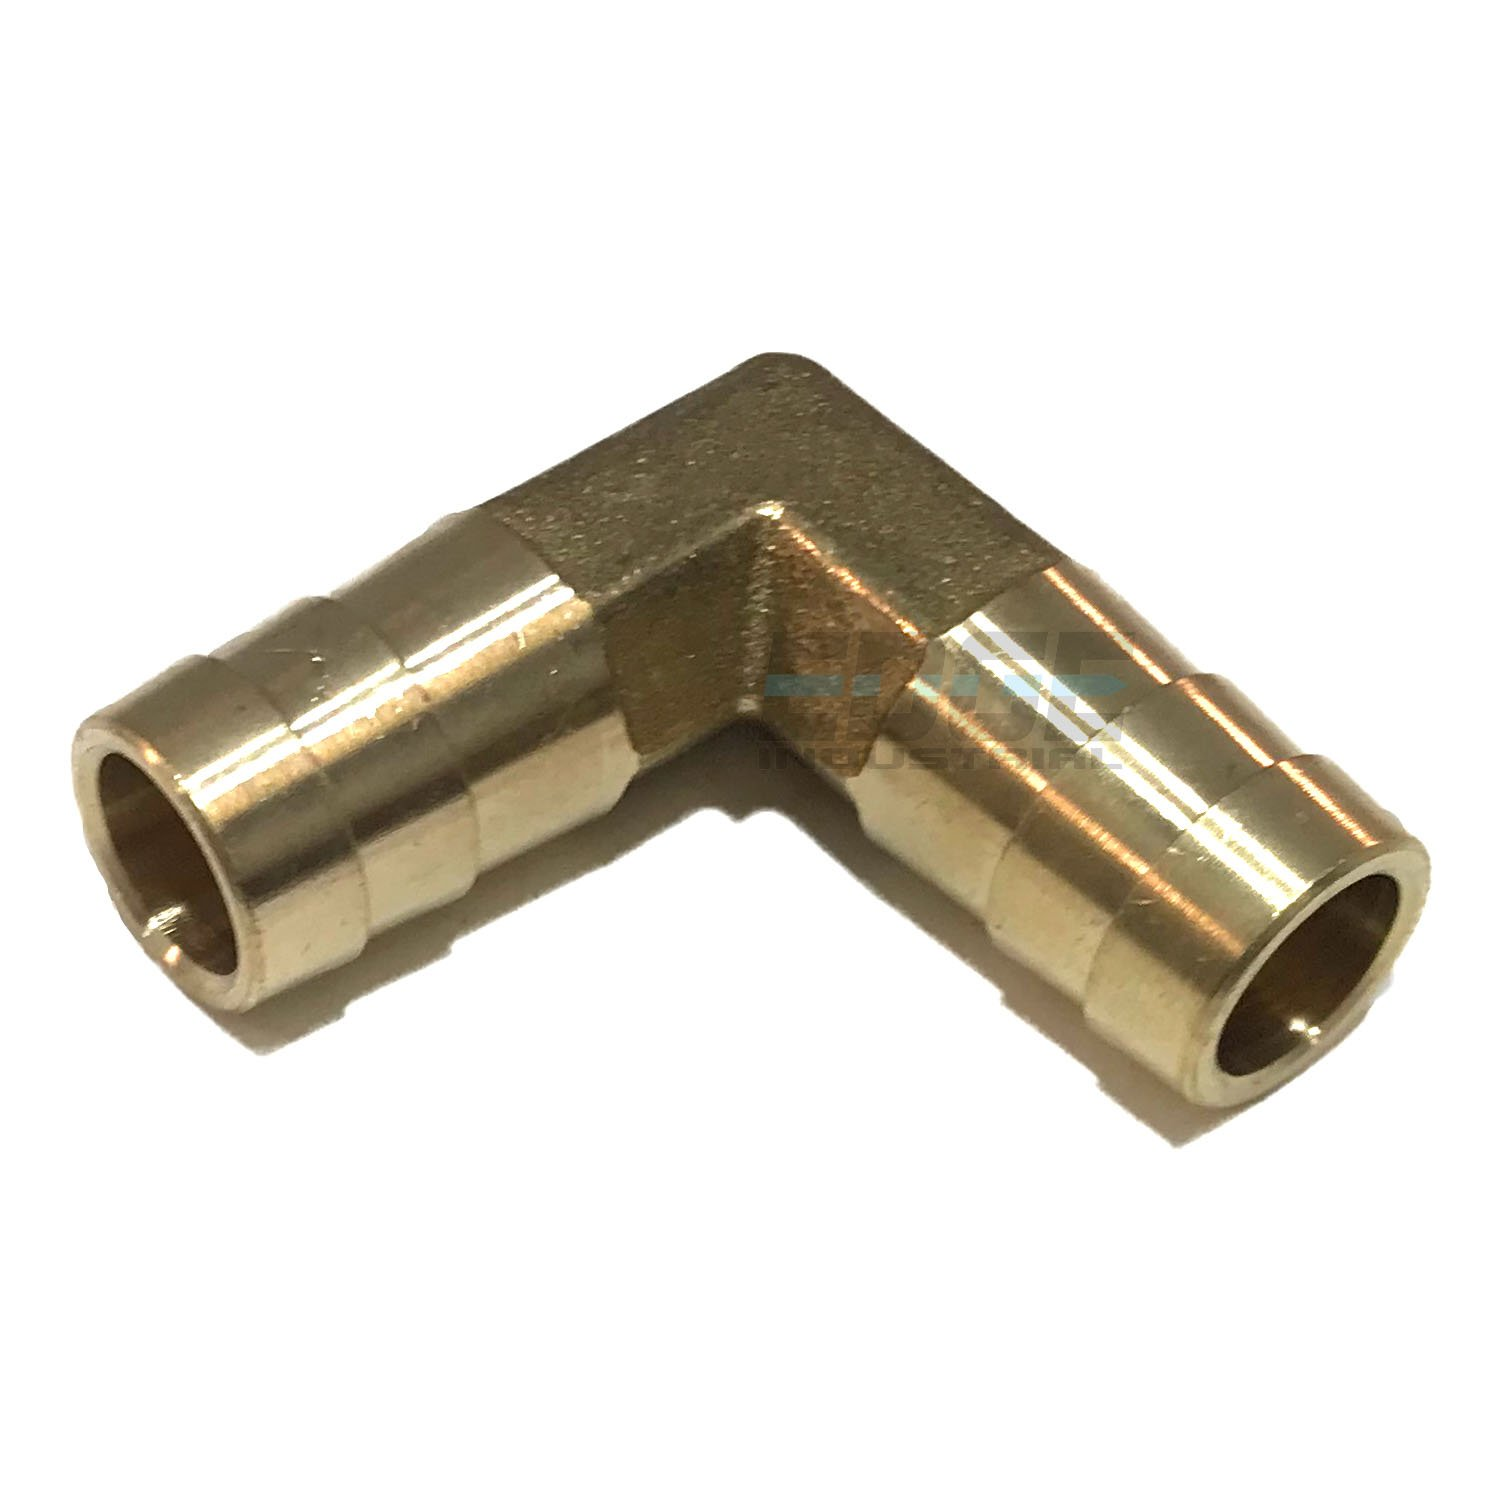 EDGE INDUSTRIAL 1//2 Hose ID 90 Degree Brass Elbow Union Fitting Fuel//AIR Gas//WOG Water//Oil